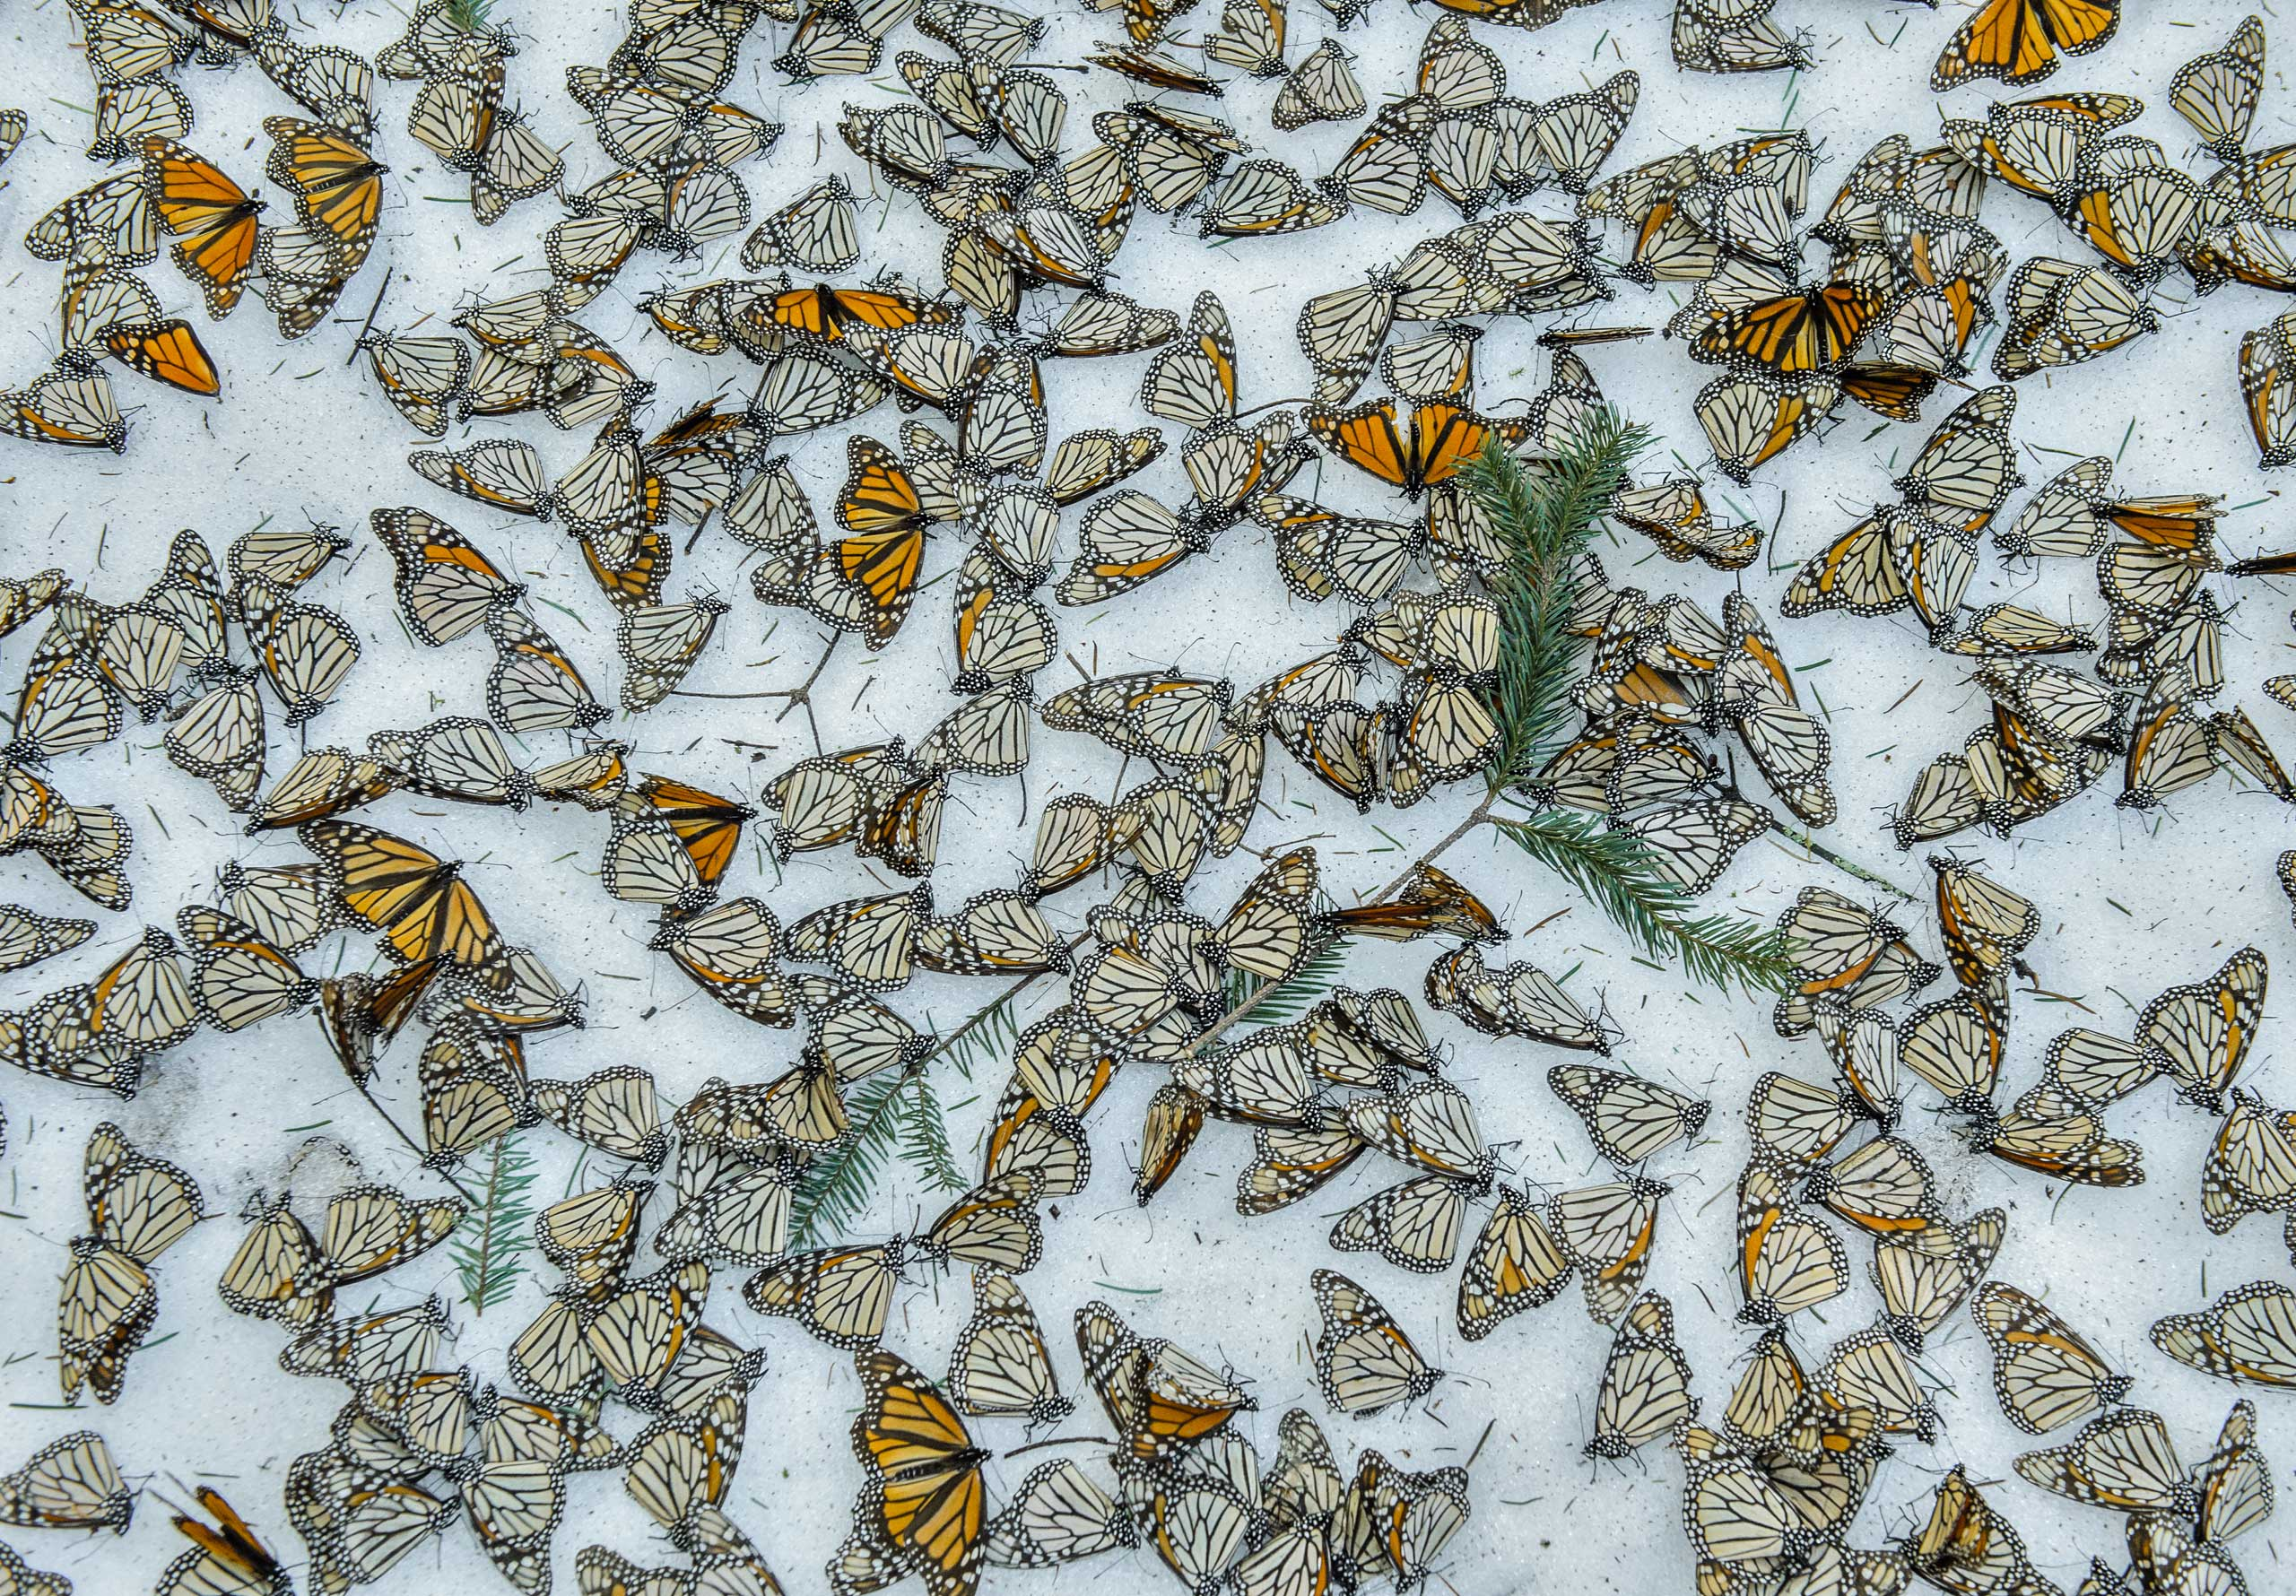 A carpet of monarch butterflies cover the forest floor of El Rosario Butterfly Sanctuary, in Michoacan, Mexico, on March 12, 2016, after a strong snowstorm hit a few days earlier.